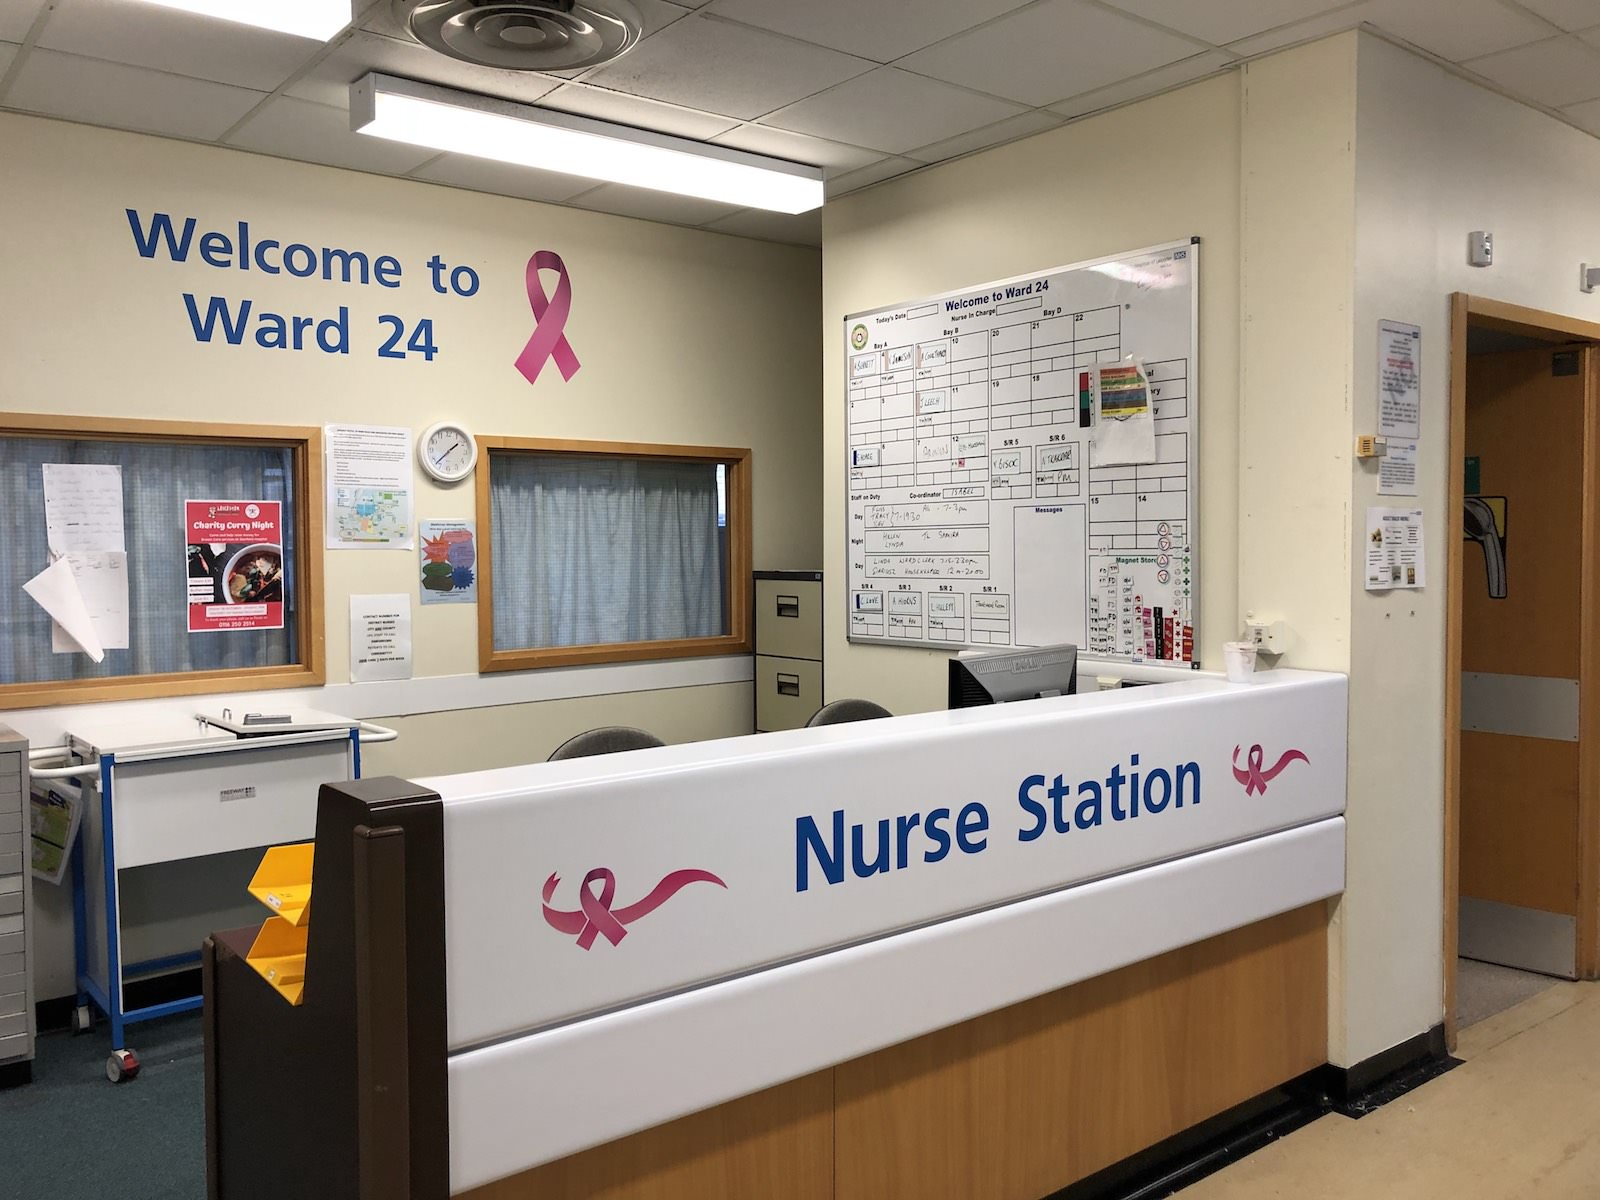 Sign Direct Commercial Signage Solutions Leicester NHS Nurse Station Wall Art